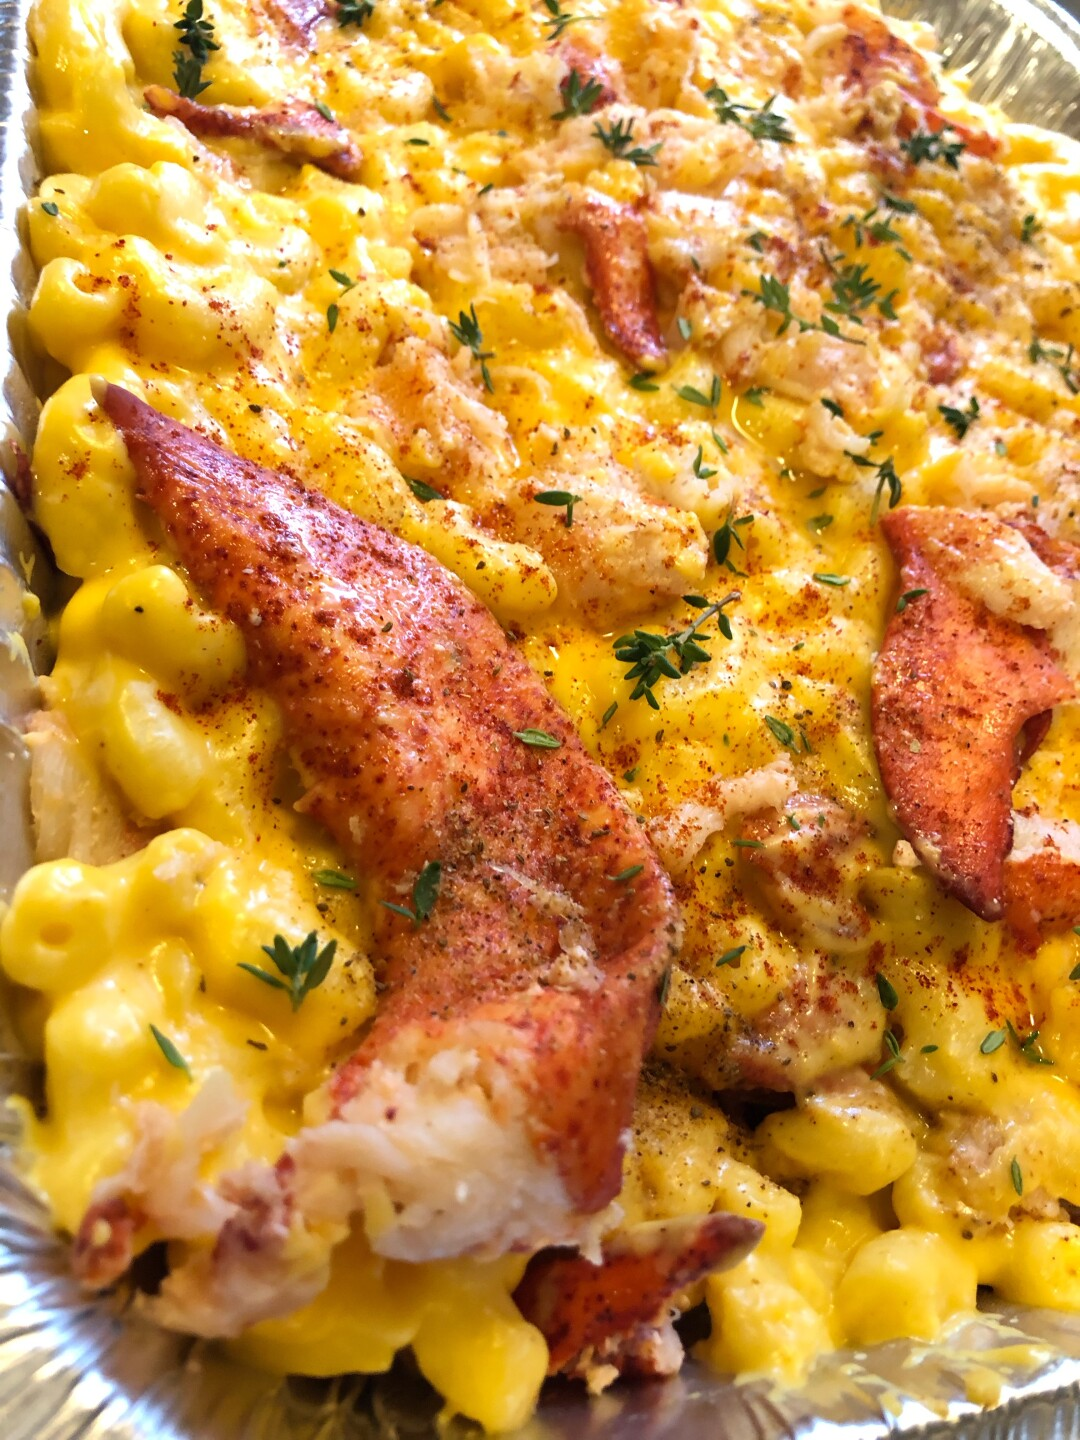 The Lobster Food Truck's Mac and Cheese